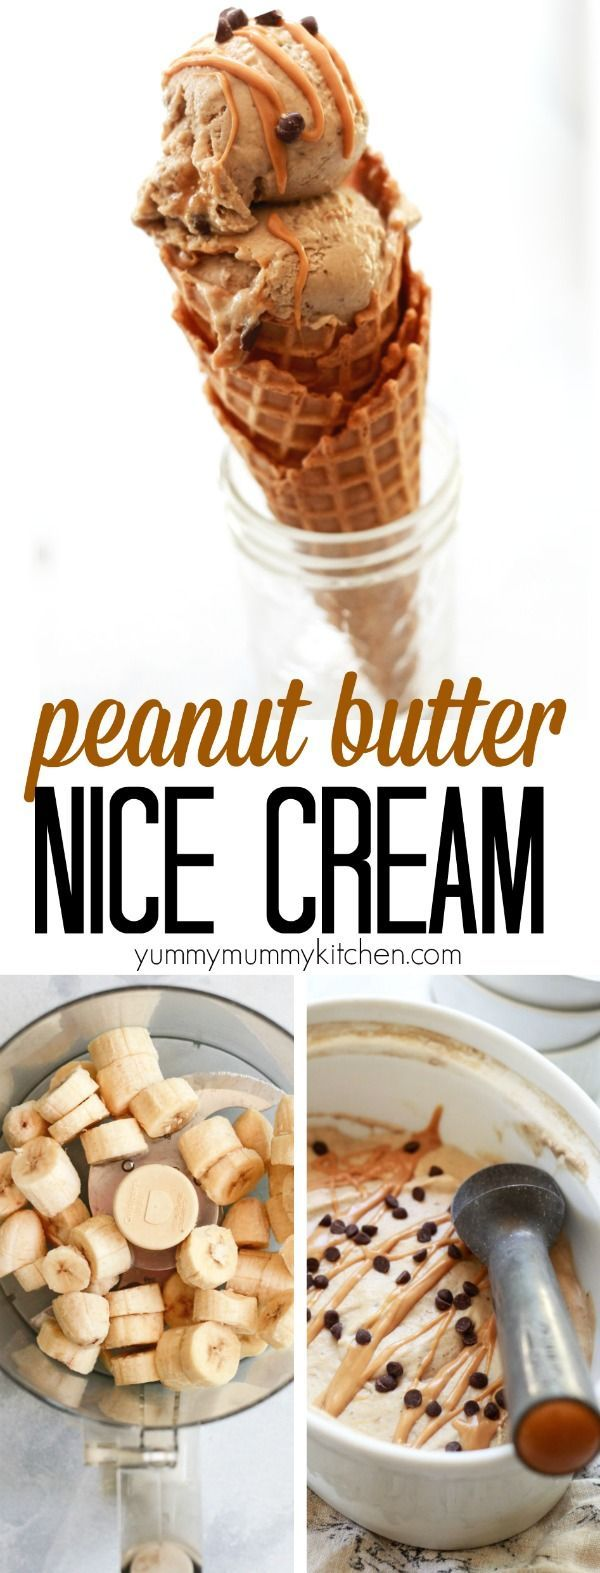 Butter Banana Nice Cream Banana nice cream flavored with peanut butter and chocolate chips is an easy, healthier, dairy-free vegan ice cream dessert recipe made with real food ingredients.Banana nice cream is a great recipe for kids to help make.Banana nice cream flavored with peanut butter and chocolate chips is an easy, he...